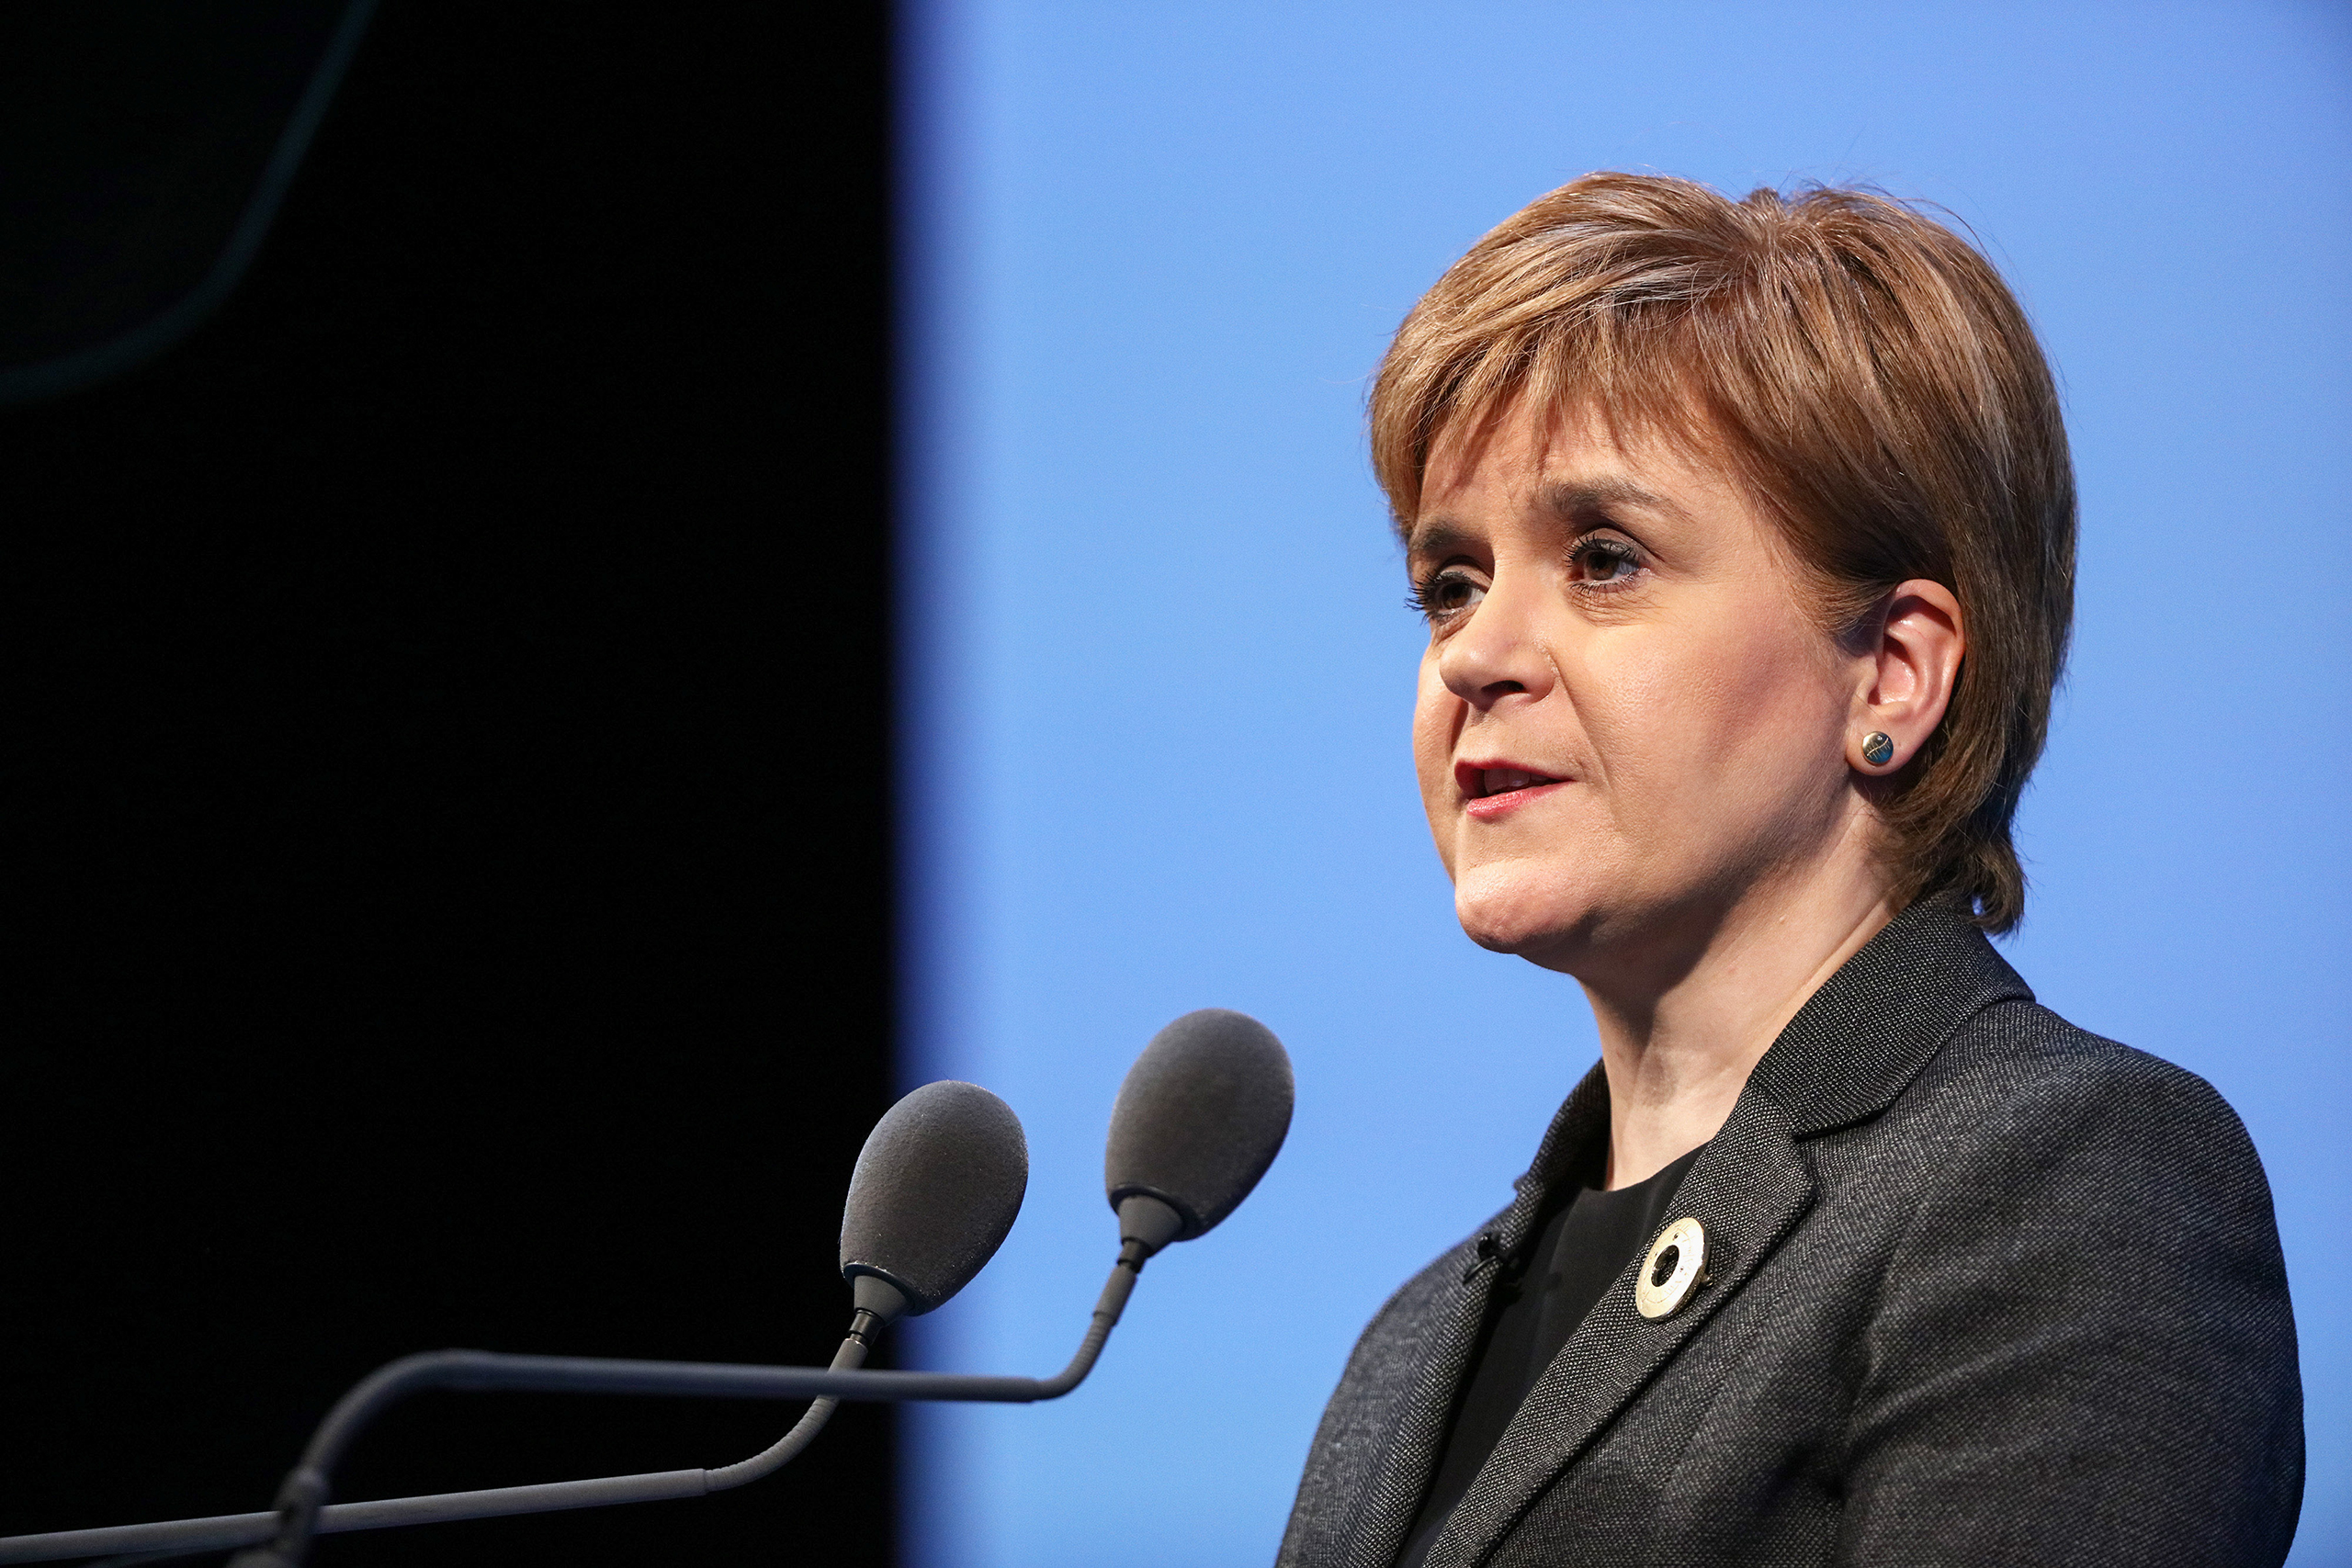 Nicola Sturgeon, Scotland's first minister and leader of the Scottish National Party (SNP), speaks during the Institute of Directors (IoD) Annual Convention 2016 at the Royal Albert Hall in London, U.K., on Sept. 27, 2016